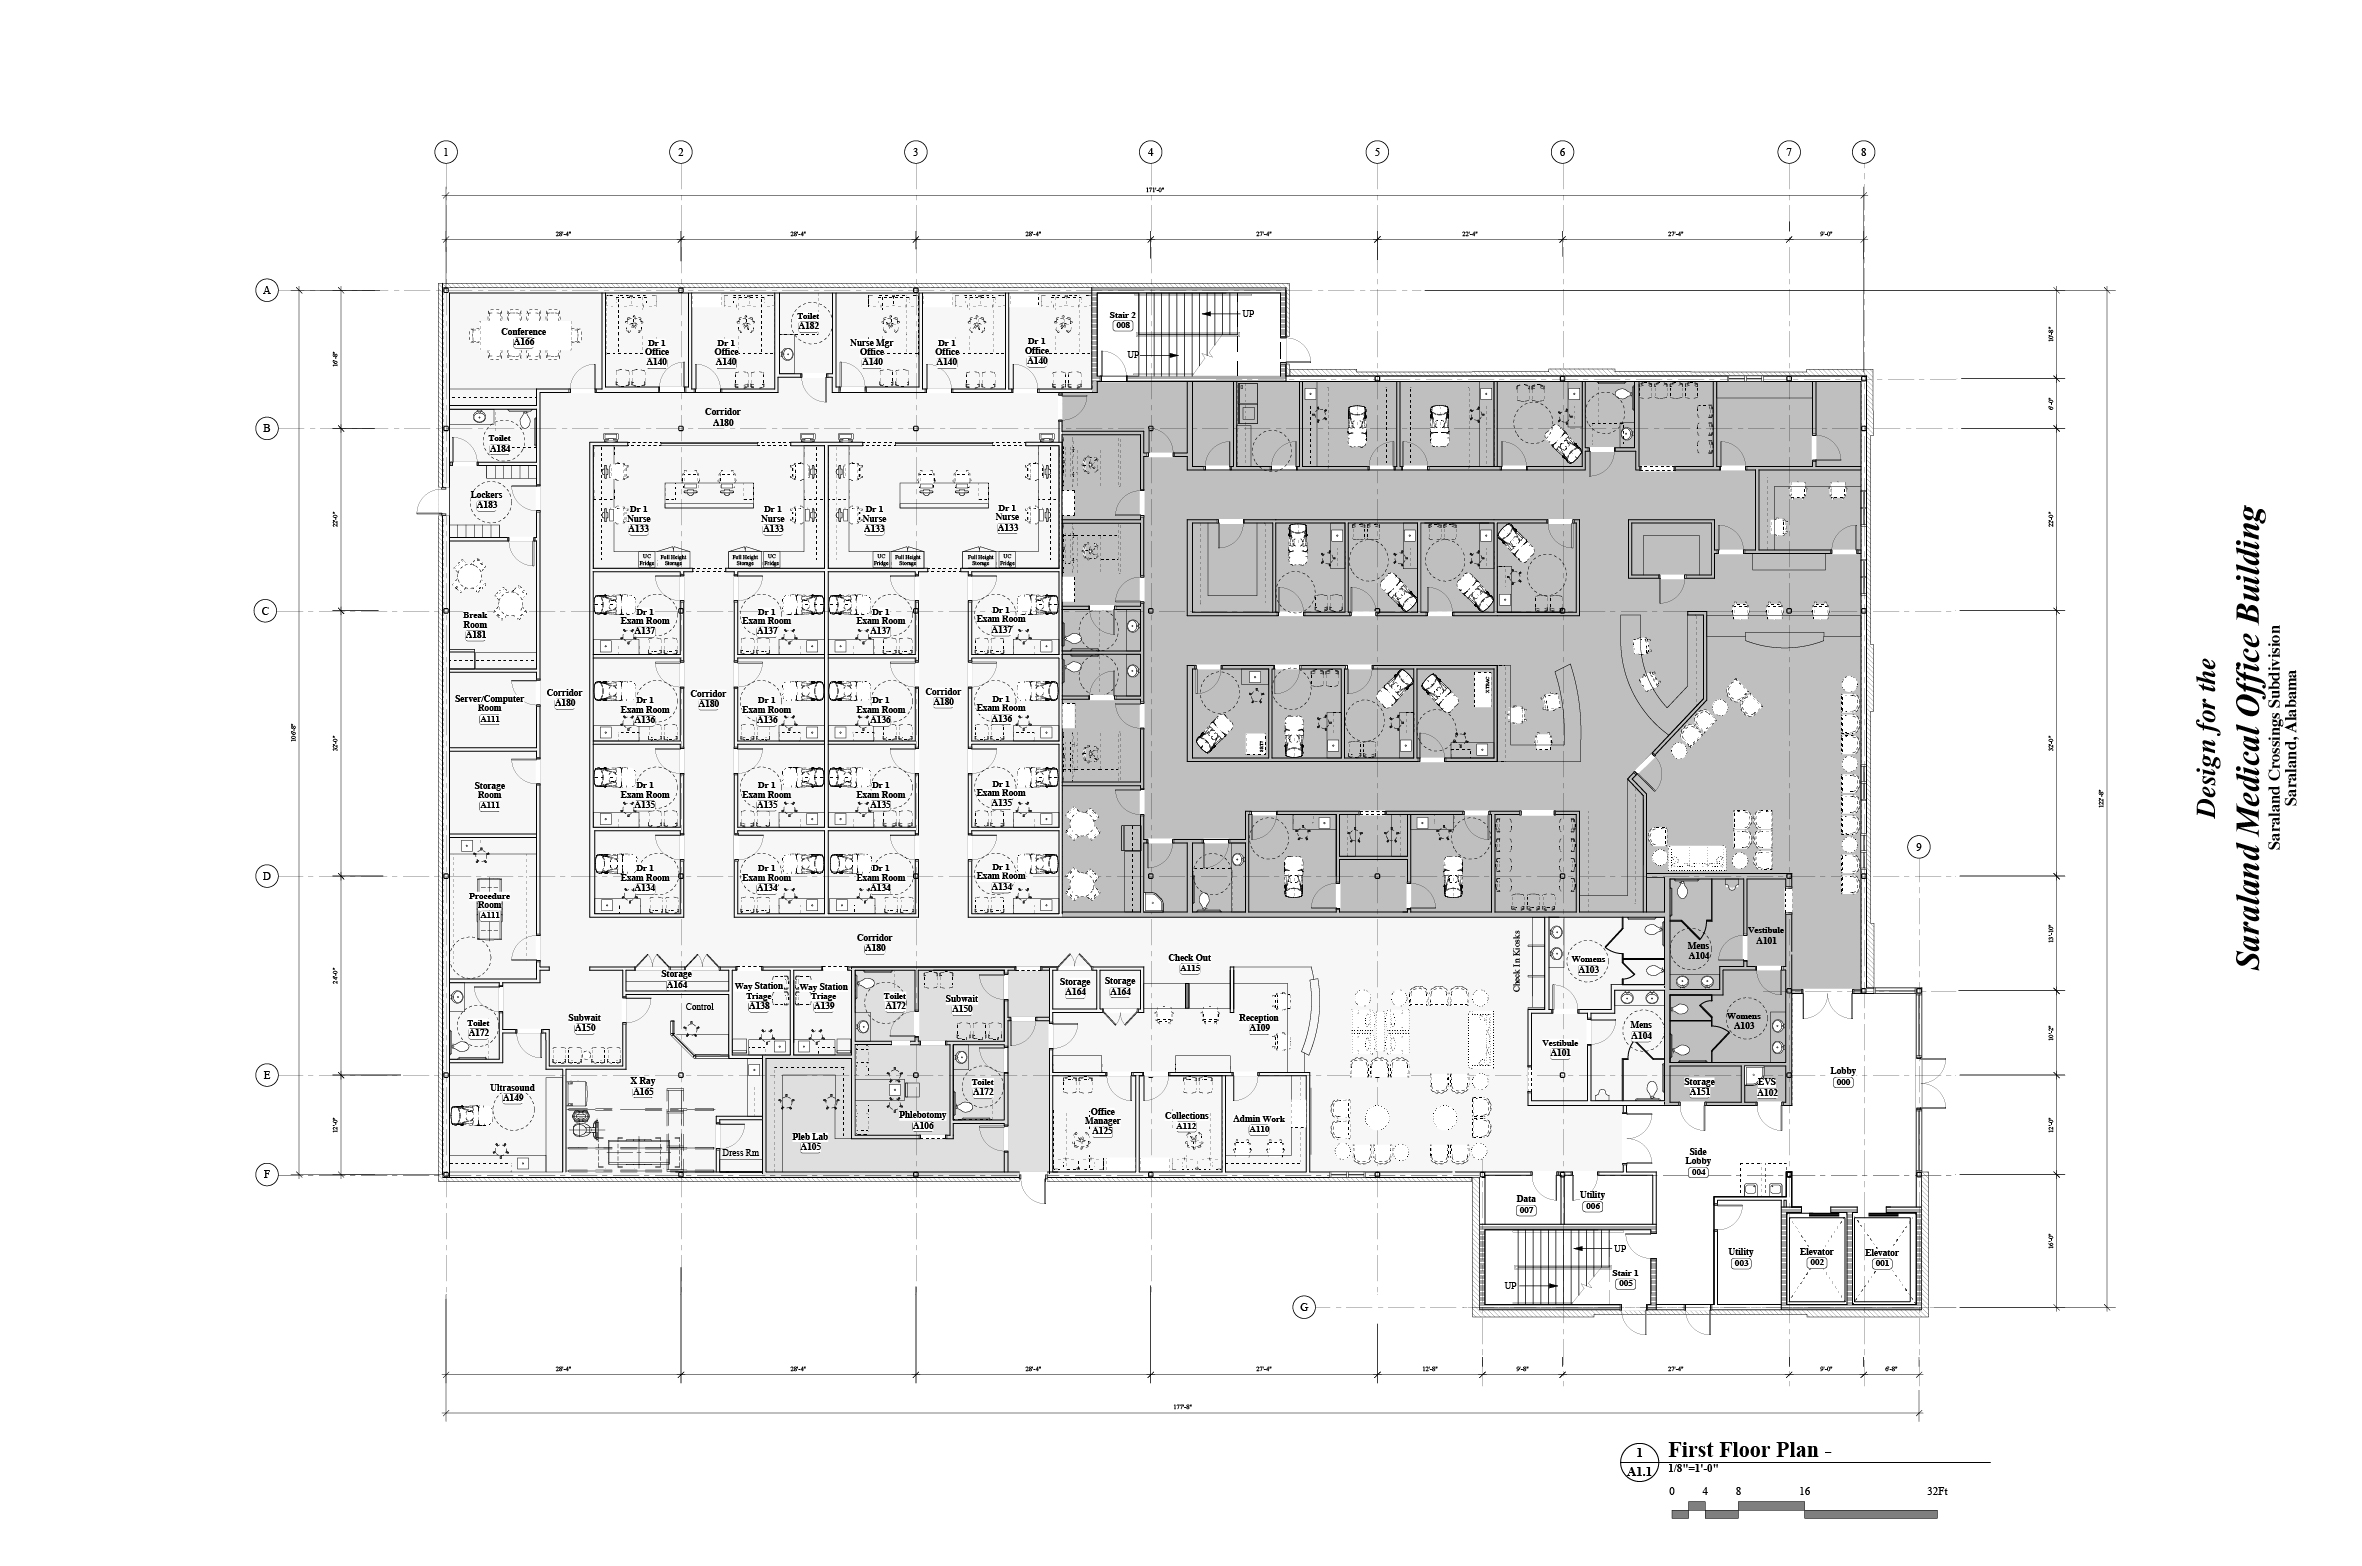 Saraland Medical Offices first floor plan